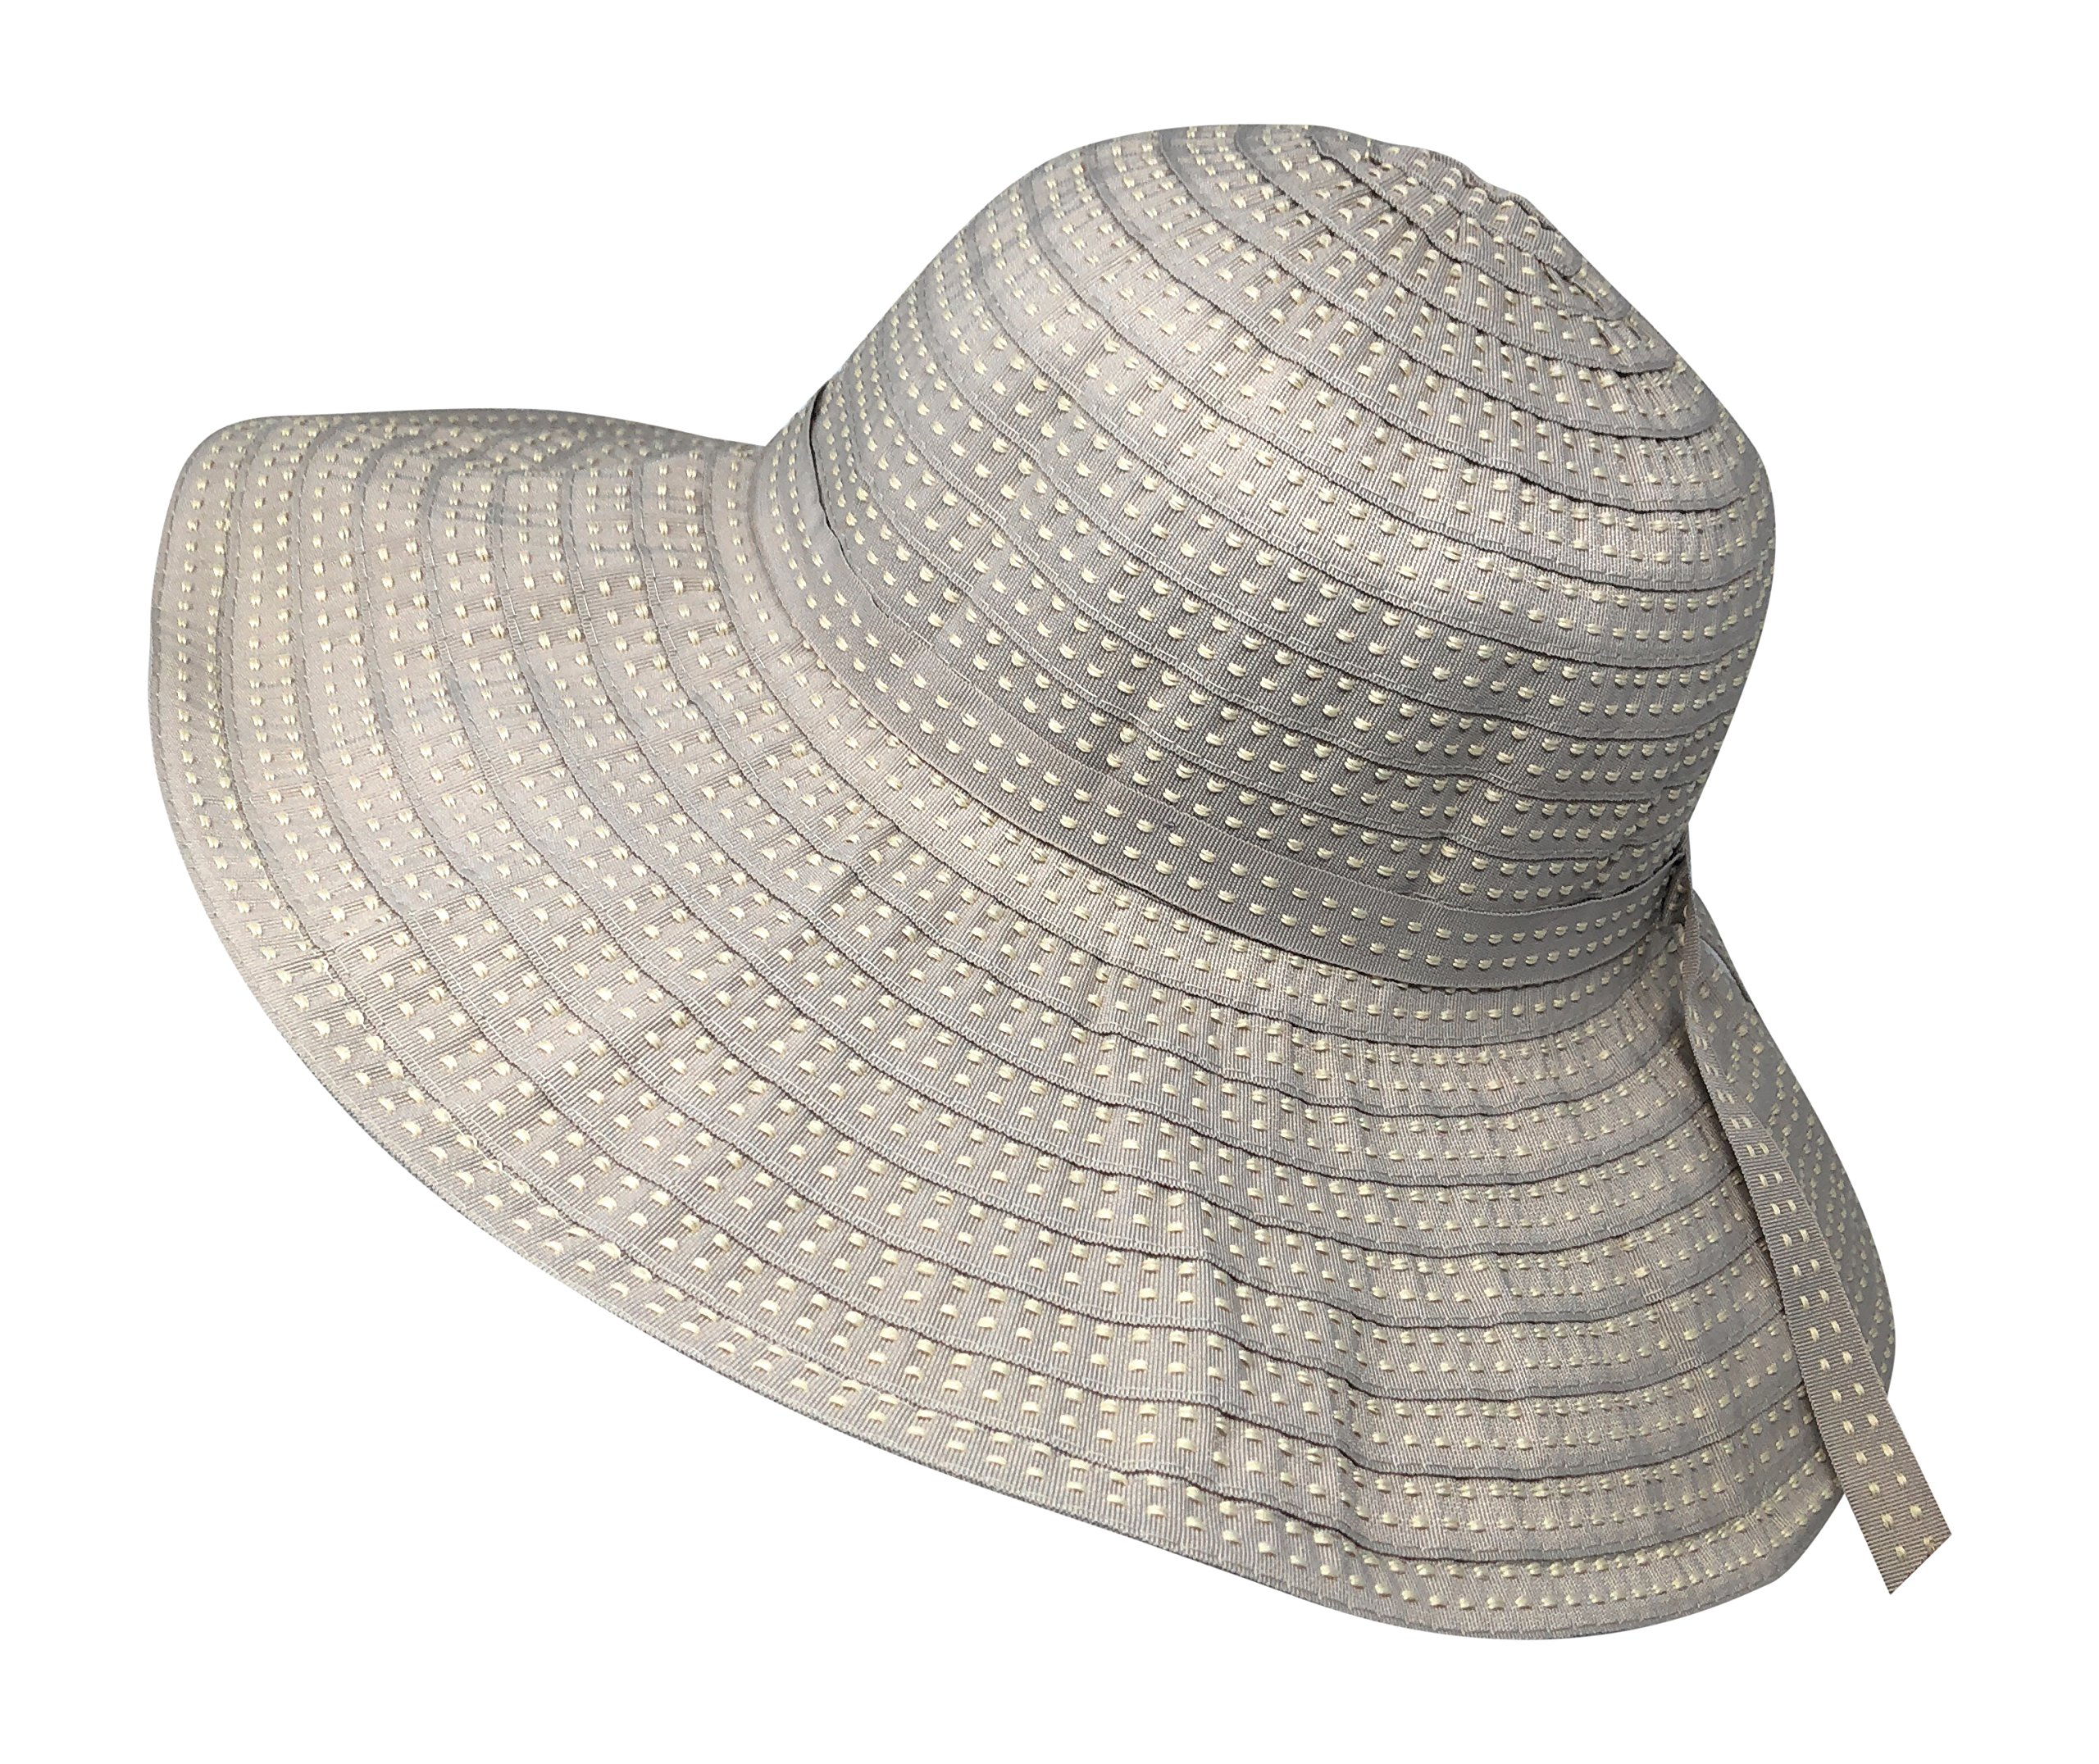 Packable Ribbon Crusher Sun Shade Beach Hat, Adjustable Wide Shapeable Brim, SPF UPF 50 UV Protection (Beige)